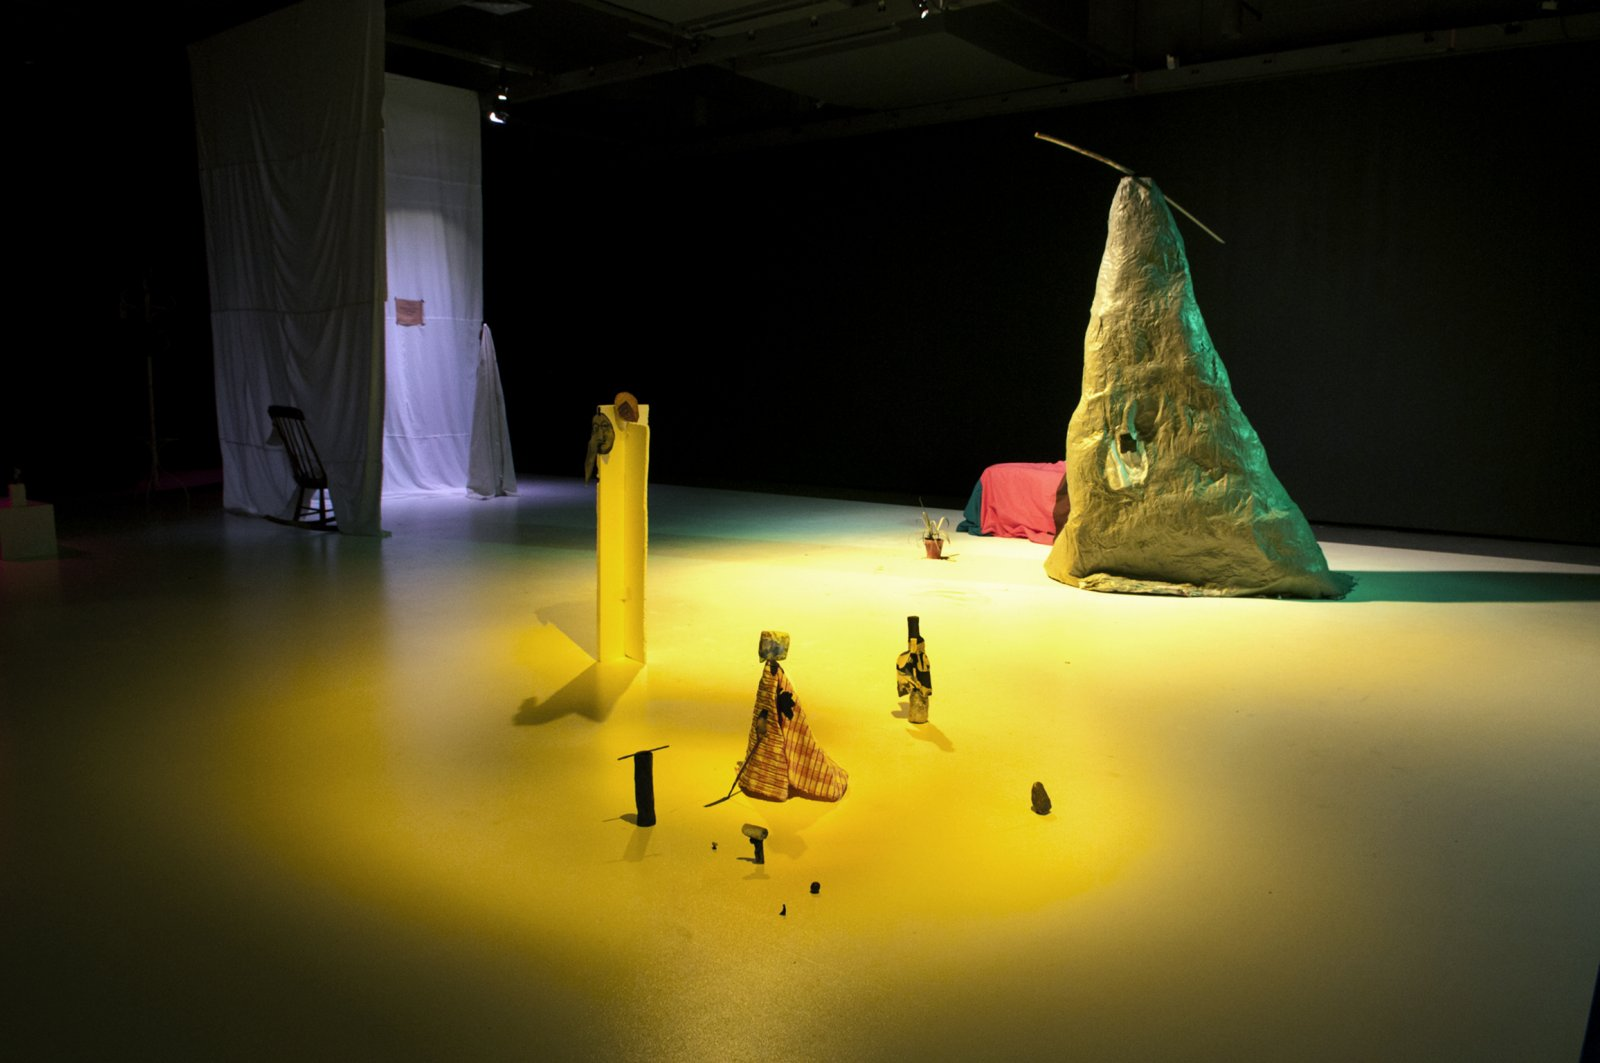 Geoffrey Farmer, God's Dice, 2010, variable components and dimensions